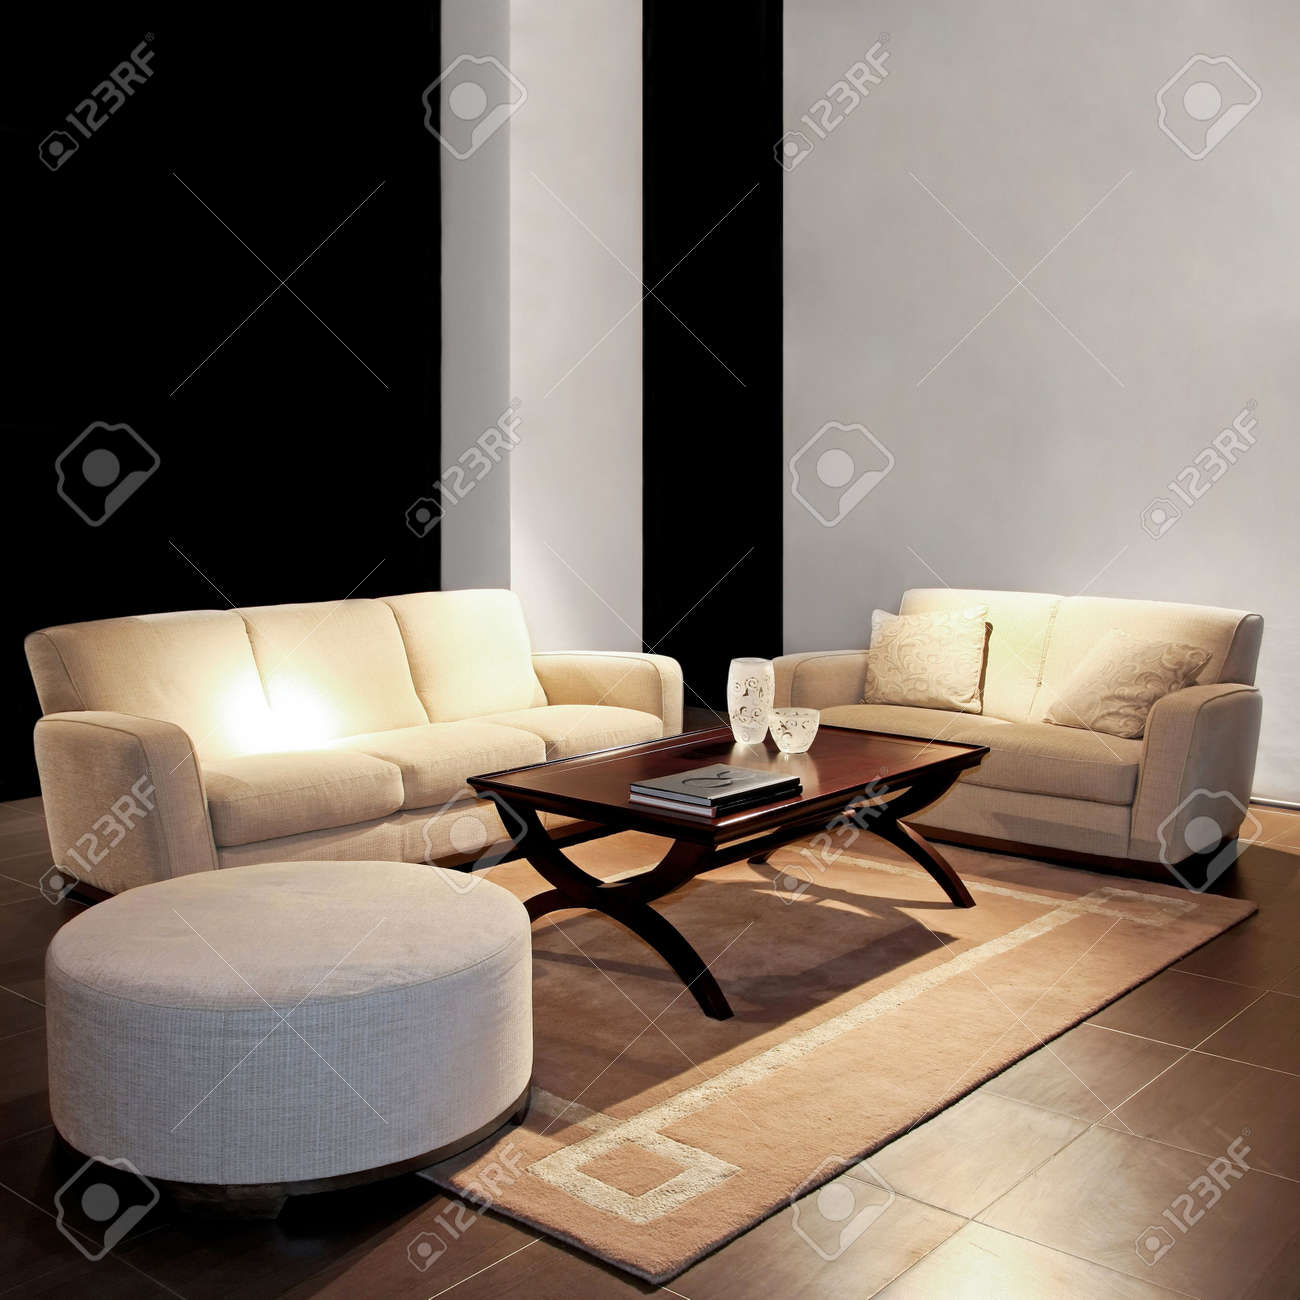 beige sofas living room. Modern living room with two beige sofas Stock Photo  2691424 Living Room With Two Beige Sofas Picture And